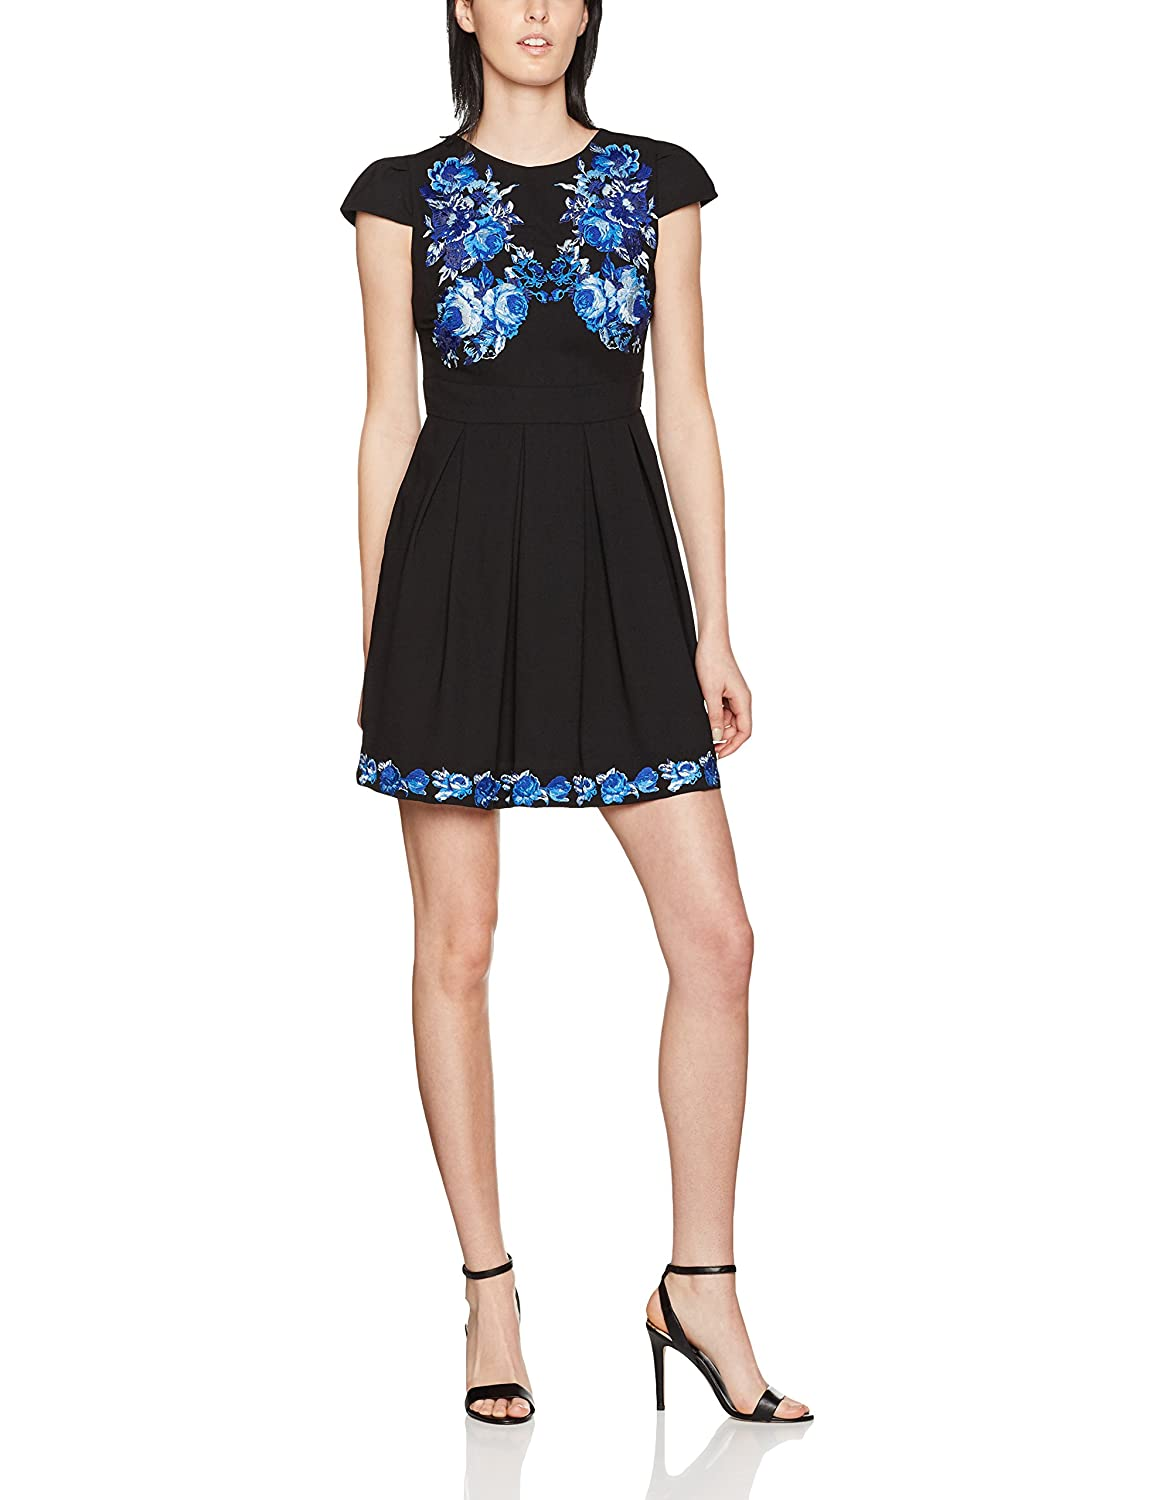 Wolf and Whistle Damen Kleid Black Blue Embroidered